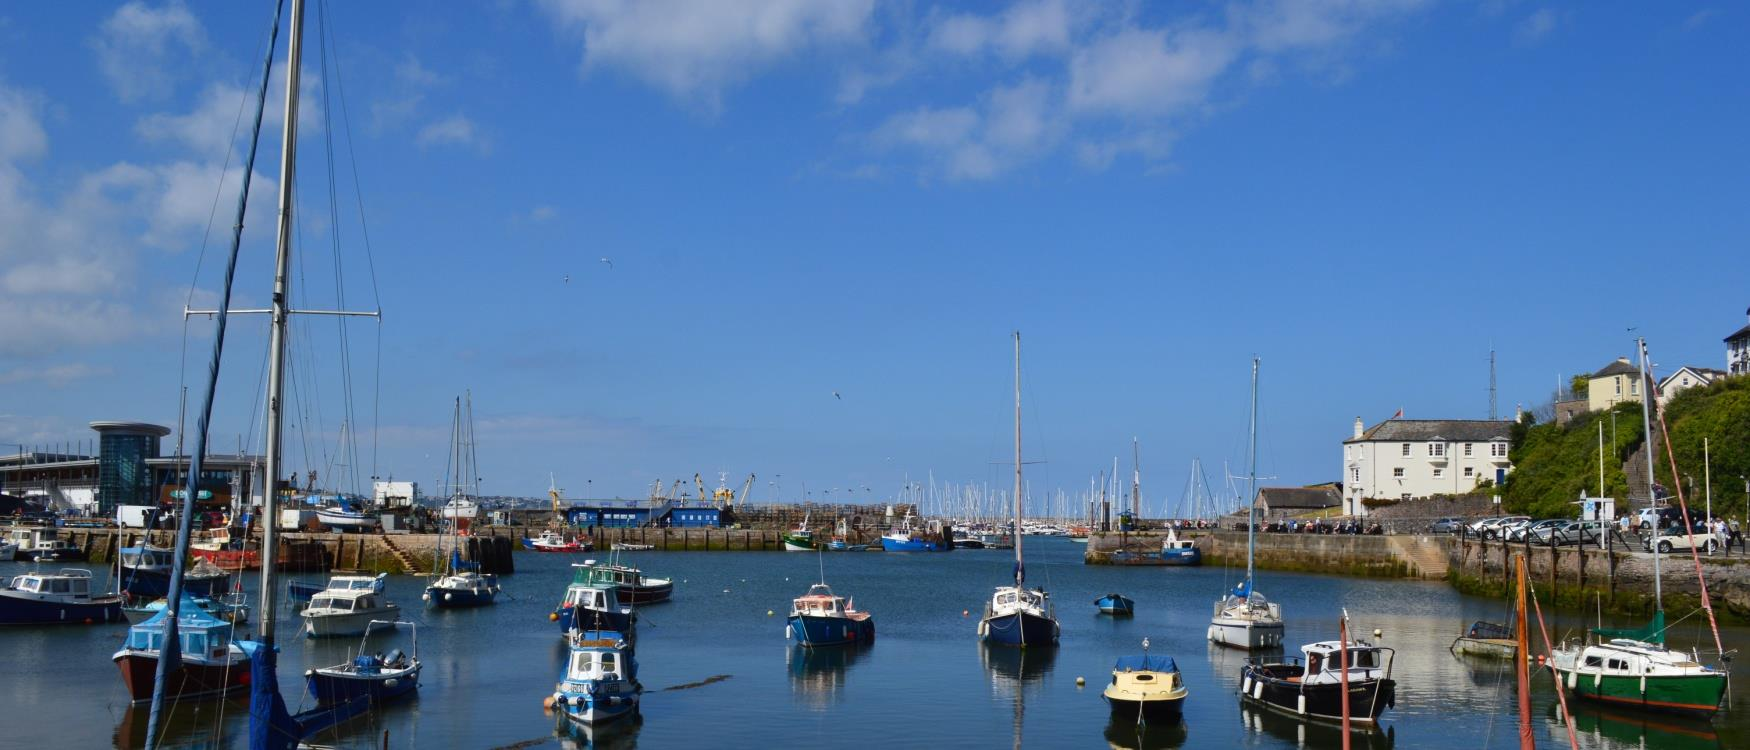 Holiday Parks, Camping and Caravanning in the English Riviera